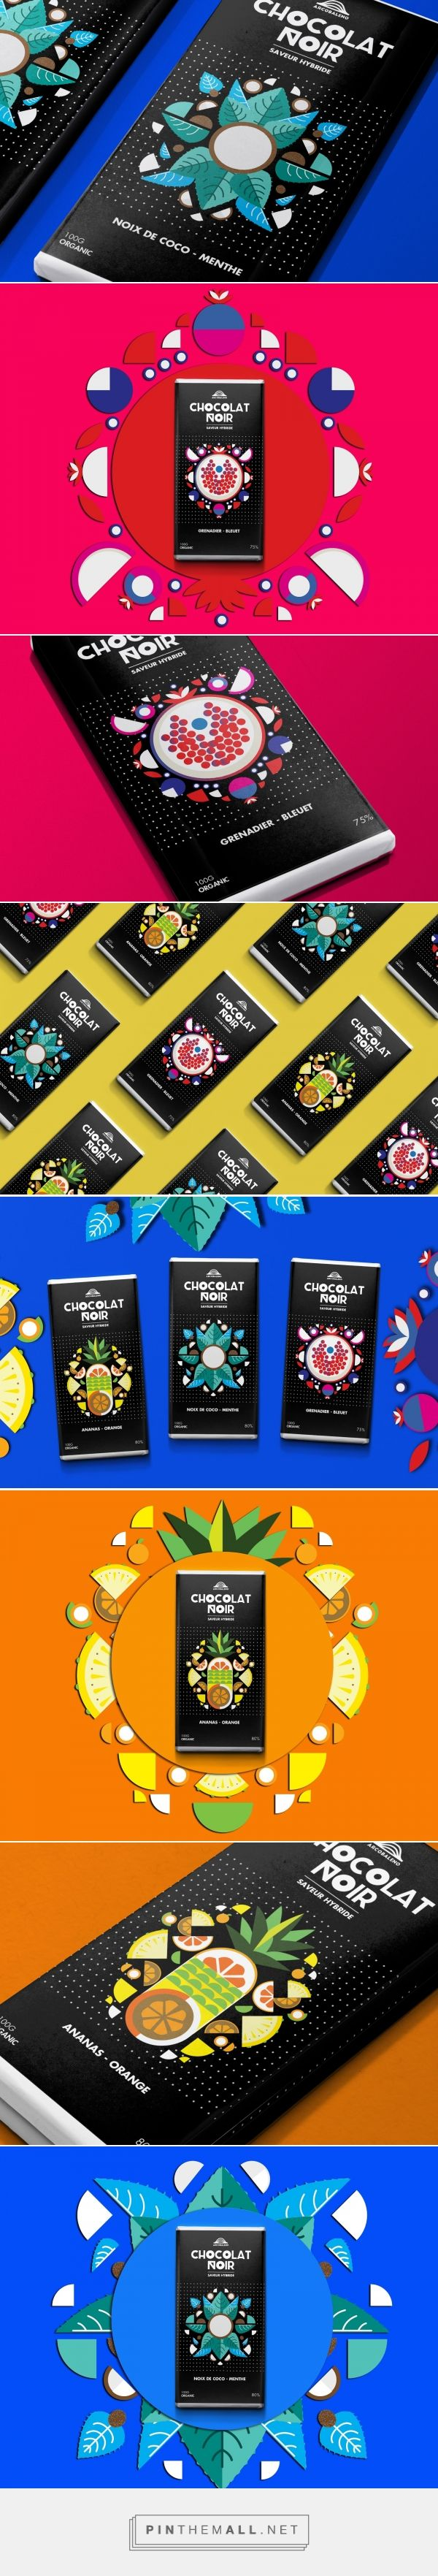 Arcobaleno Chocolate packaging design concept by Dang Vo - http://www.packagingoftheworld.com/2017/02/arcobaleno-chocolate-student-project.html